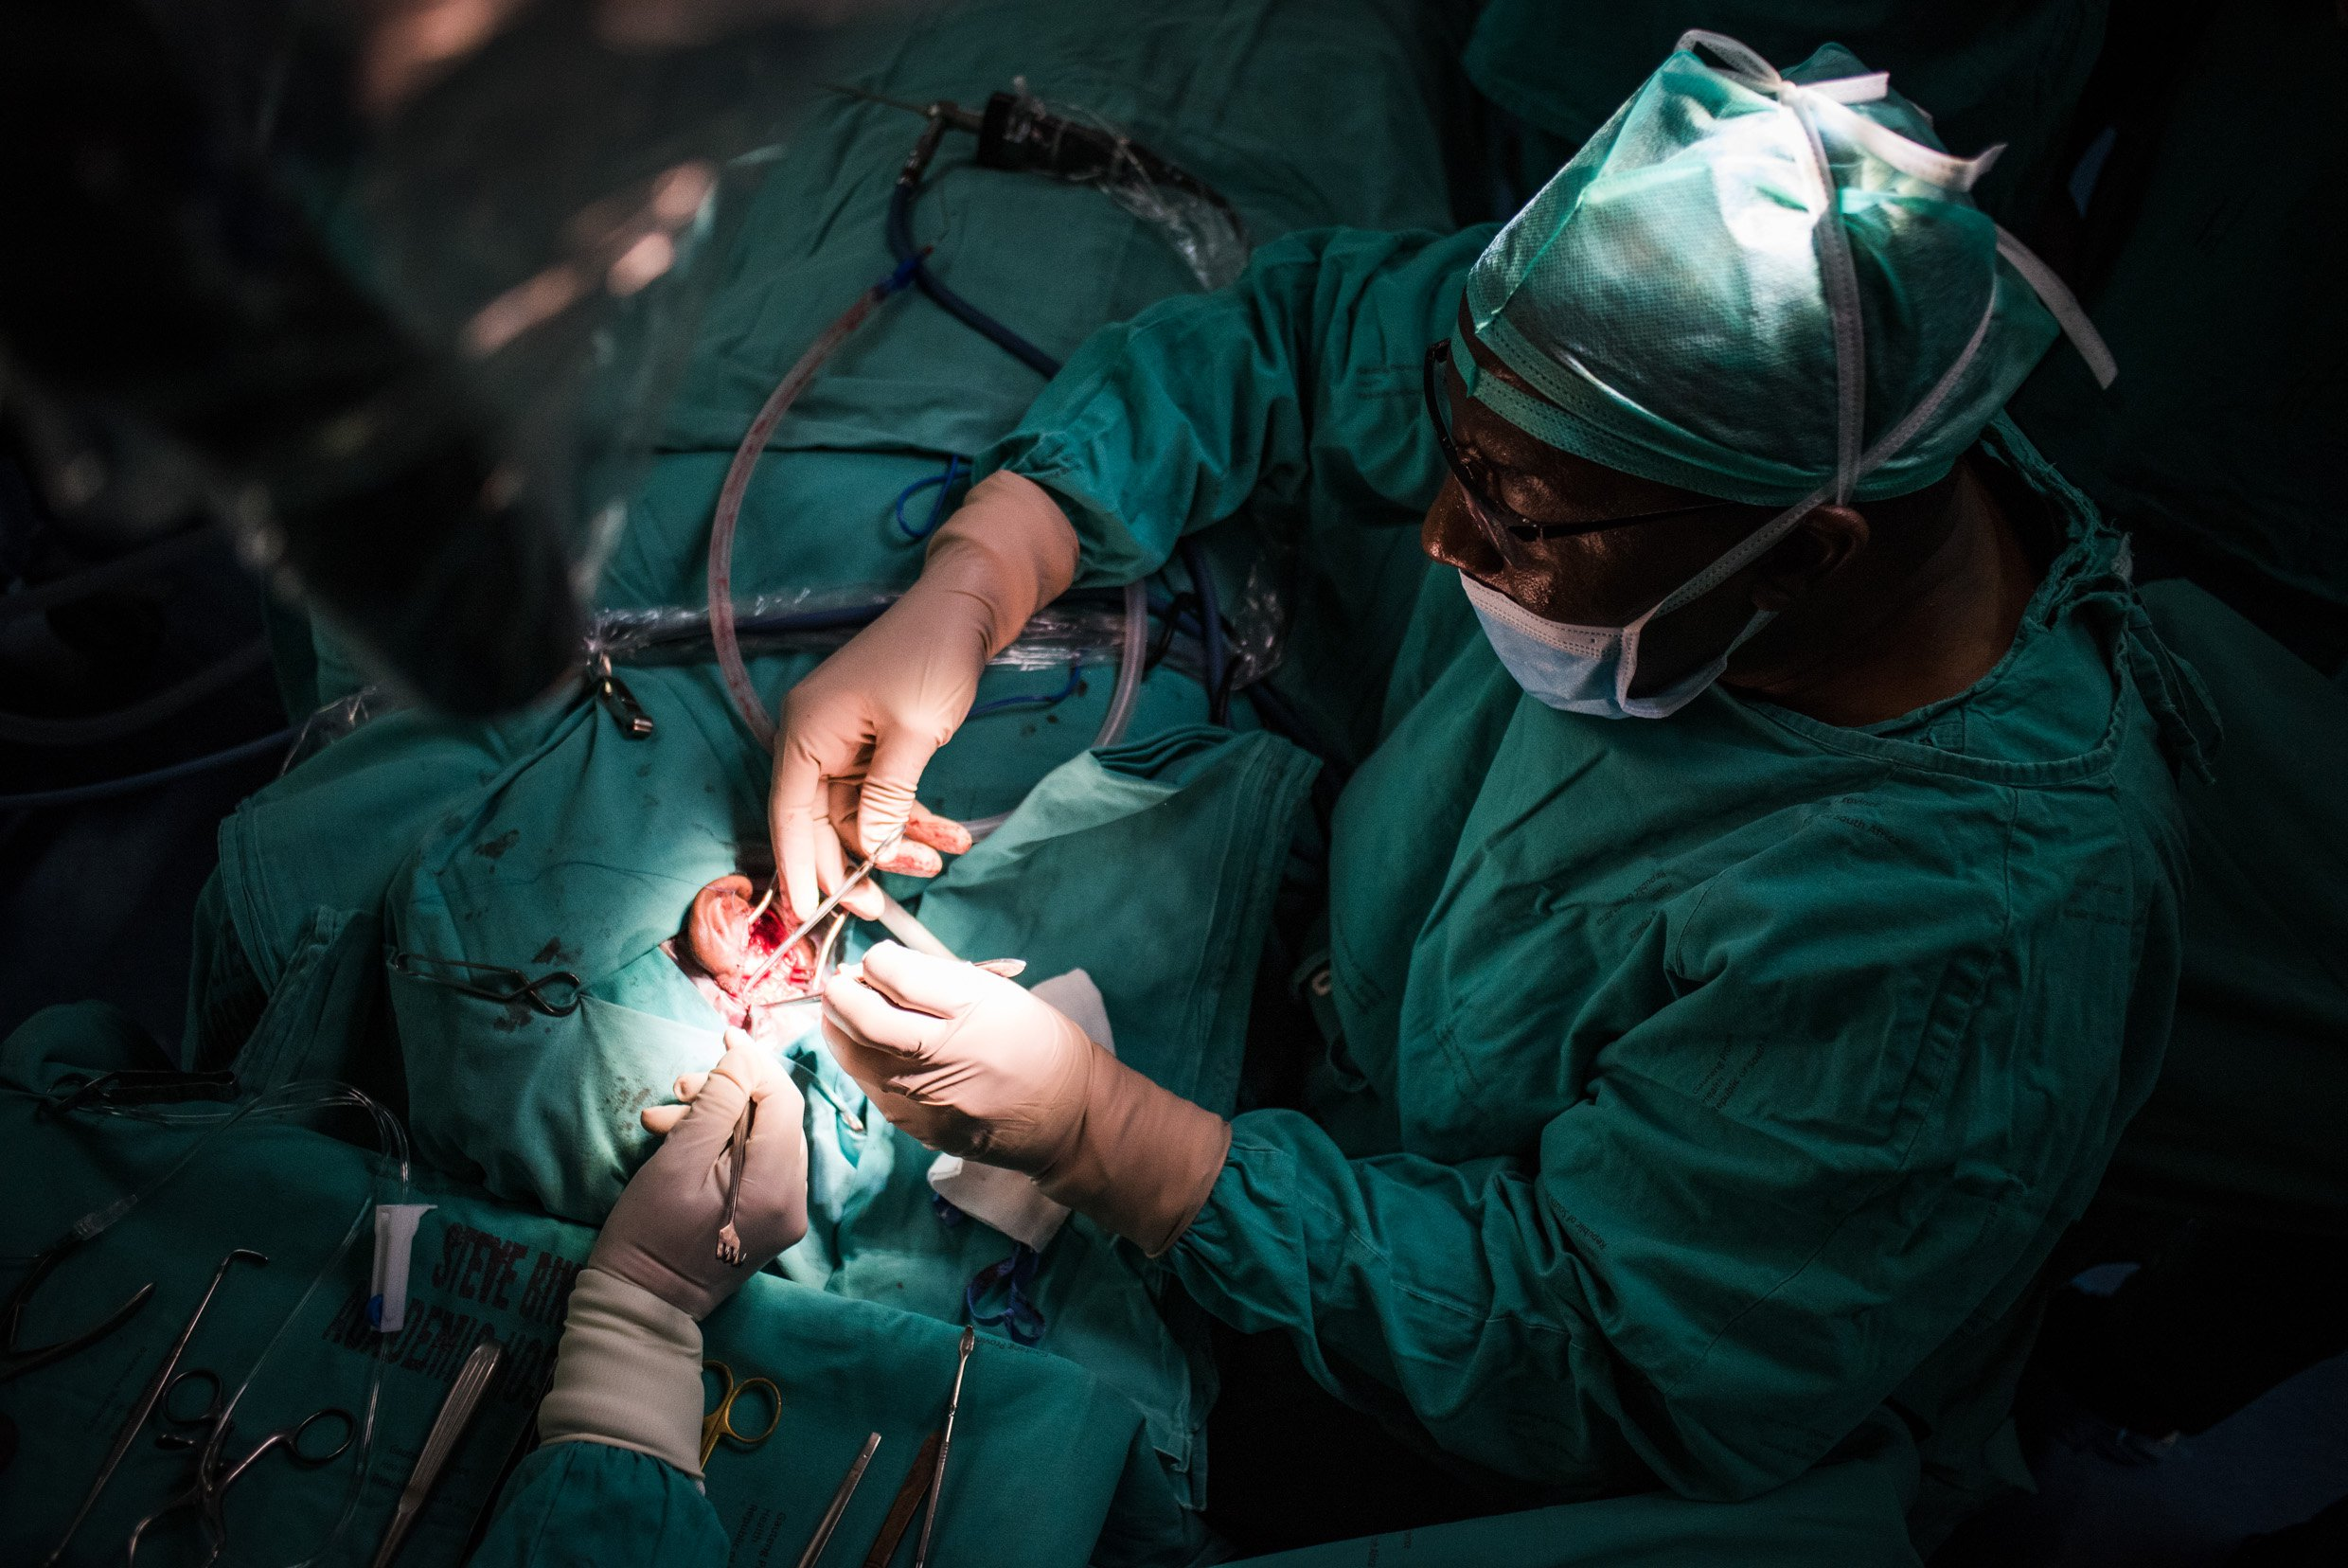 Ossiculoplasty (Middle Ear) Surgery In Iran